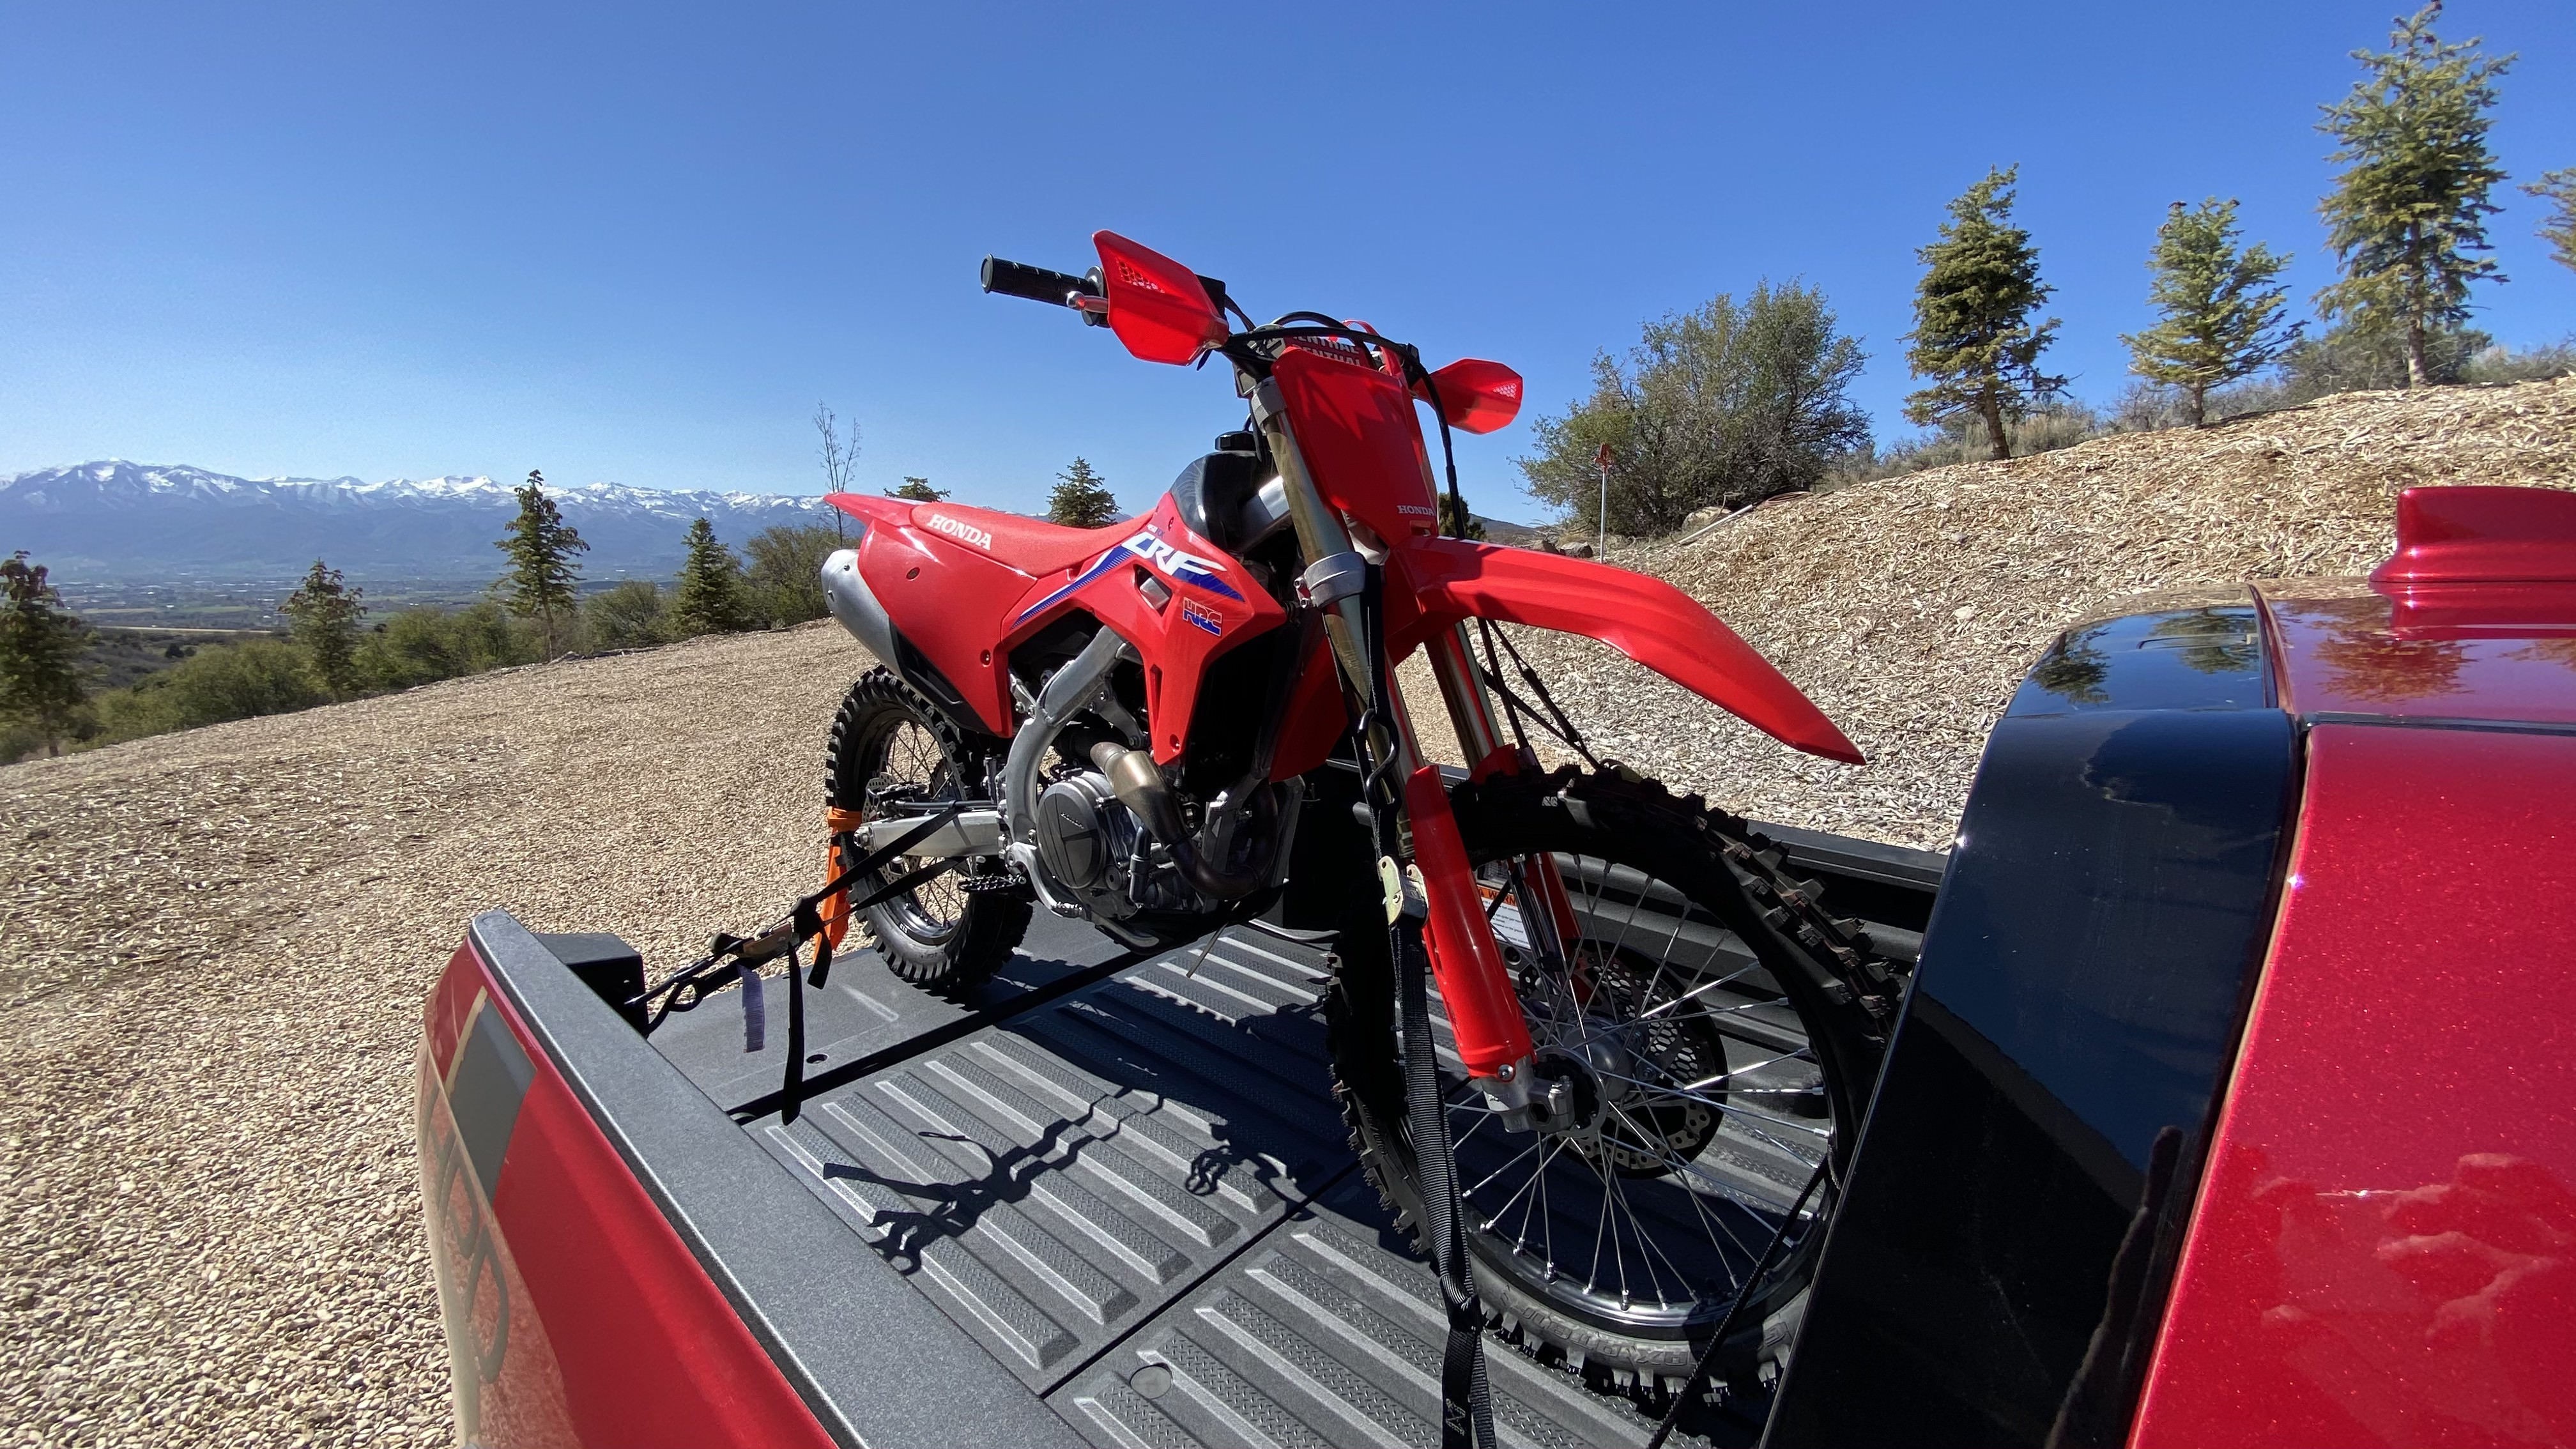 A closeup shot of the CRF450RX in the pickup's bed.